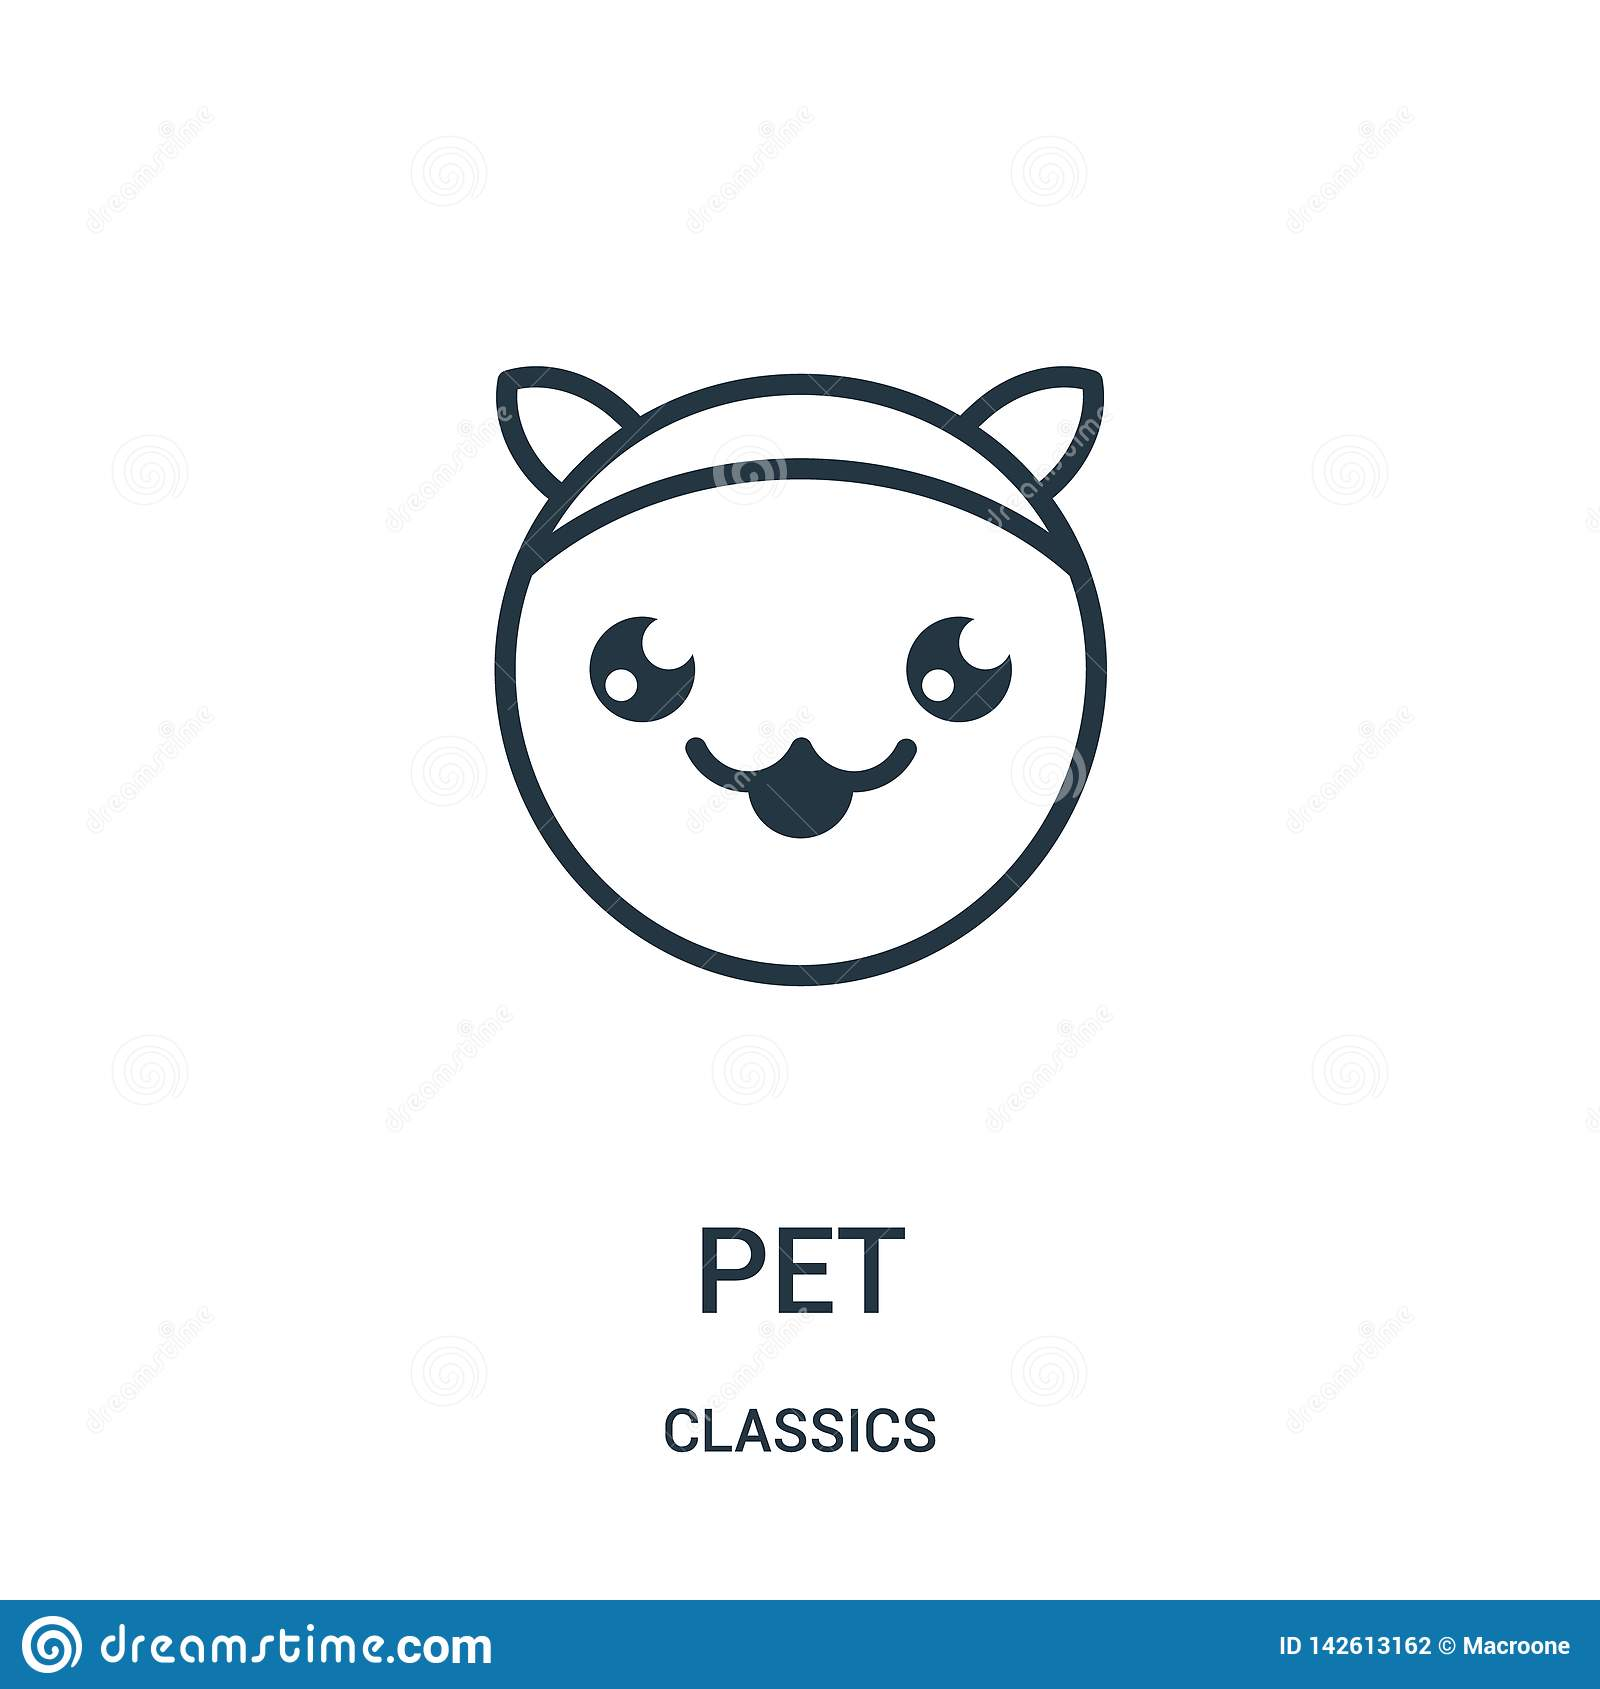 pet icon vector from classics collection. Thin line pet outline icon vector illustration. Linear symbol